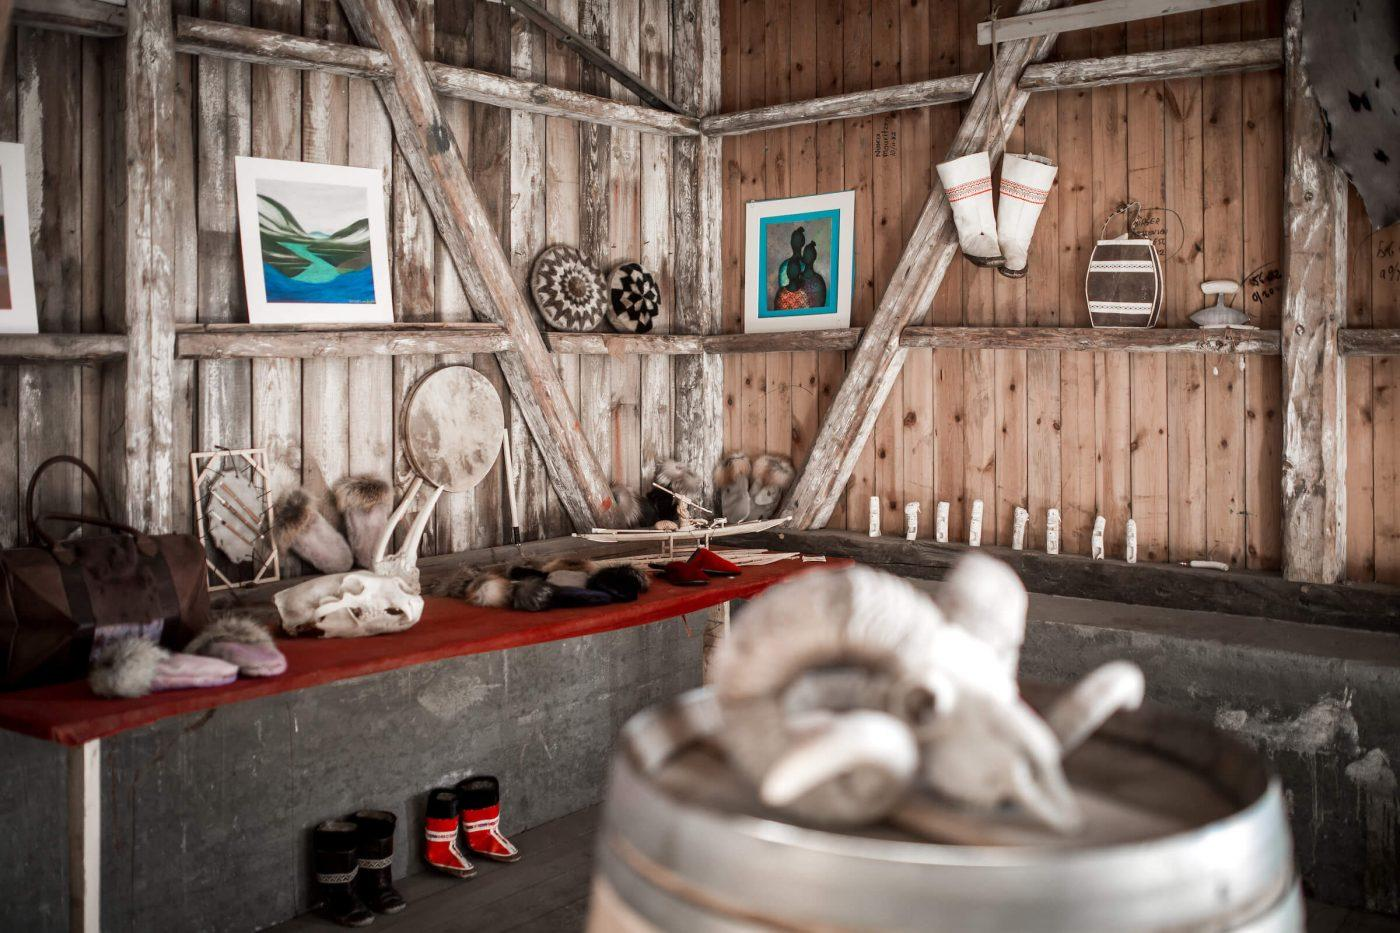 Inside the Hotel Narsaq art an crafts shop at the old harbour in Narsaq in South Greenland. Photo by Mads Pihl.